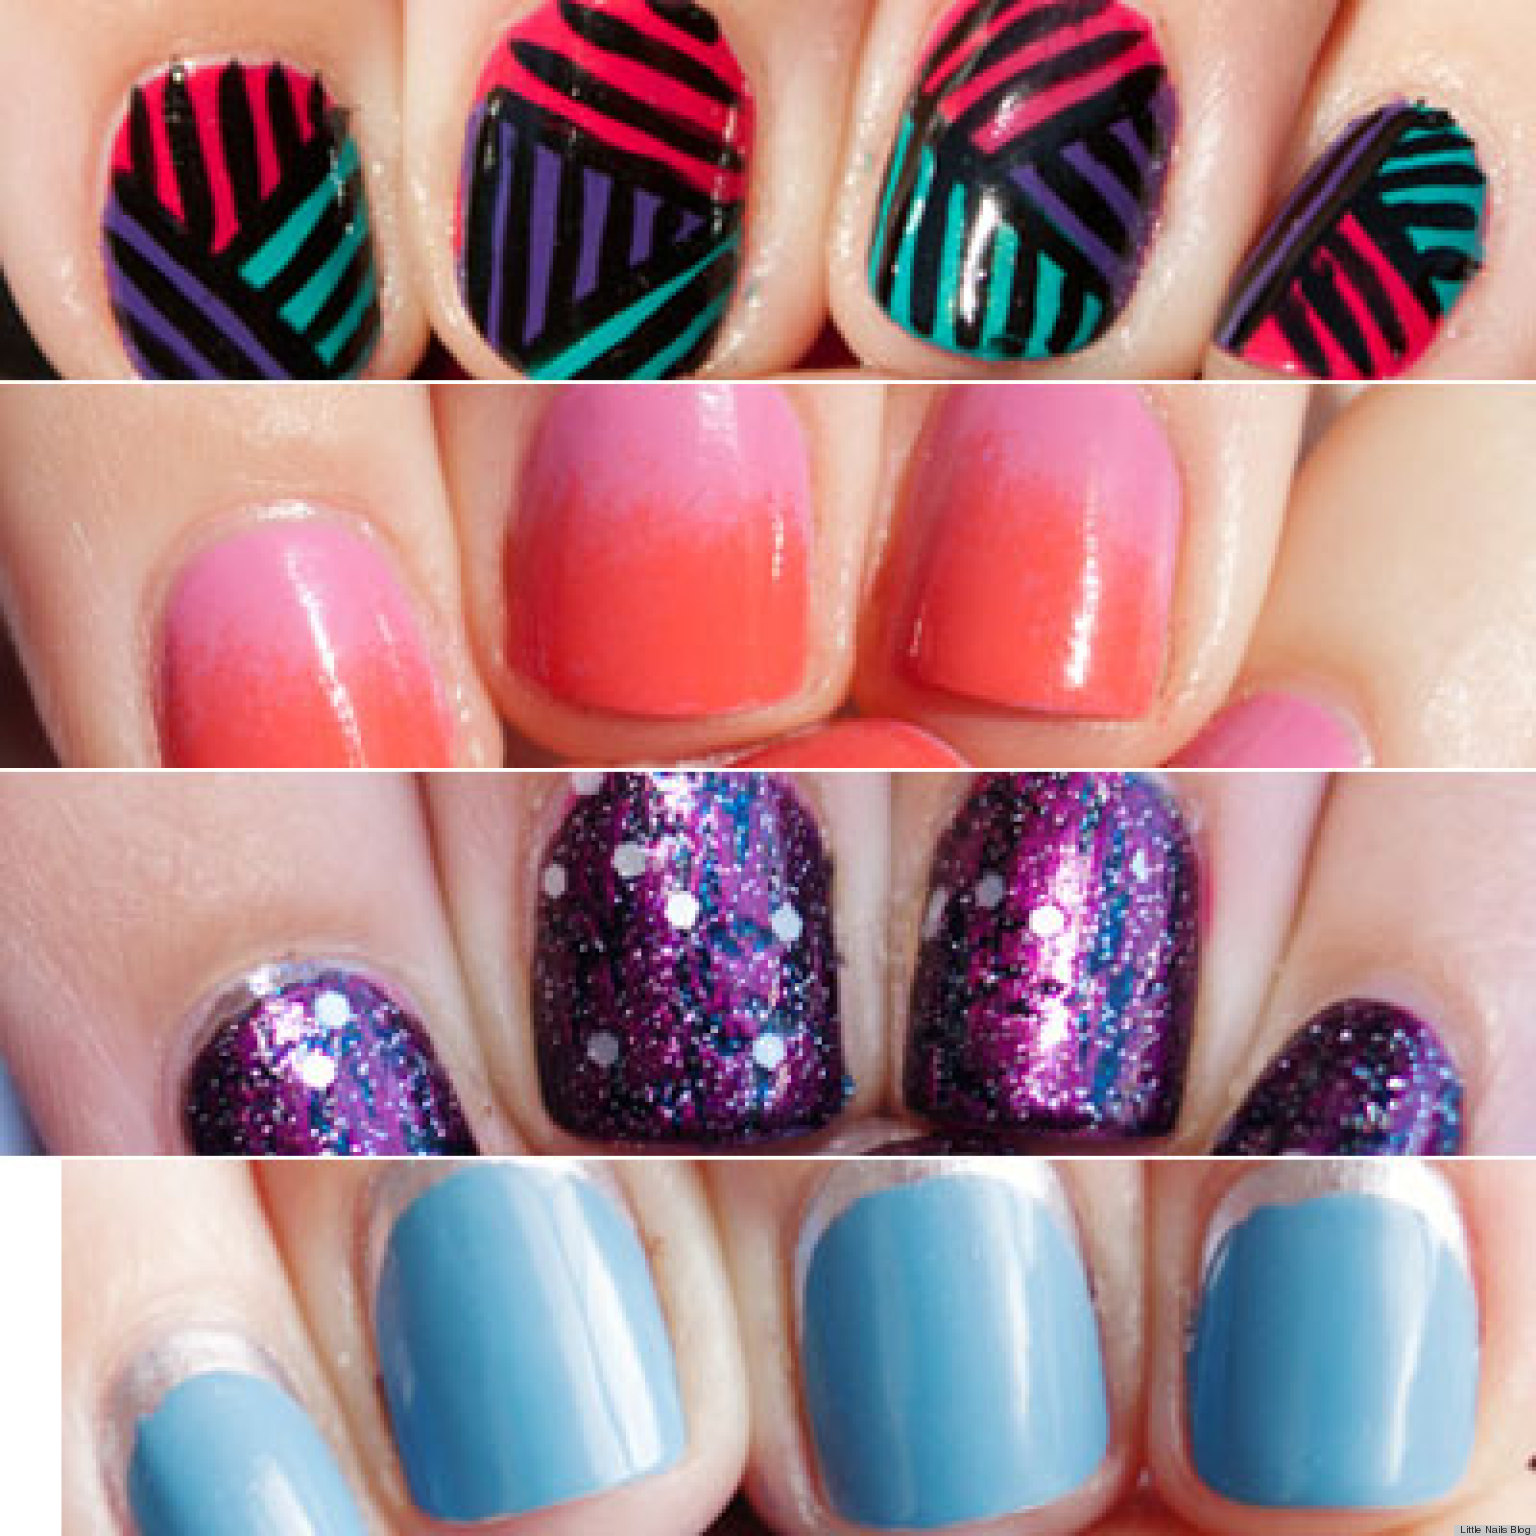 13 nail art ideas for teeny tiny fingertips photos the huffington post